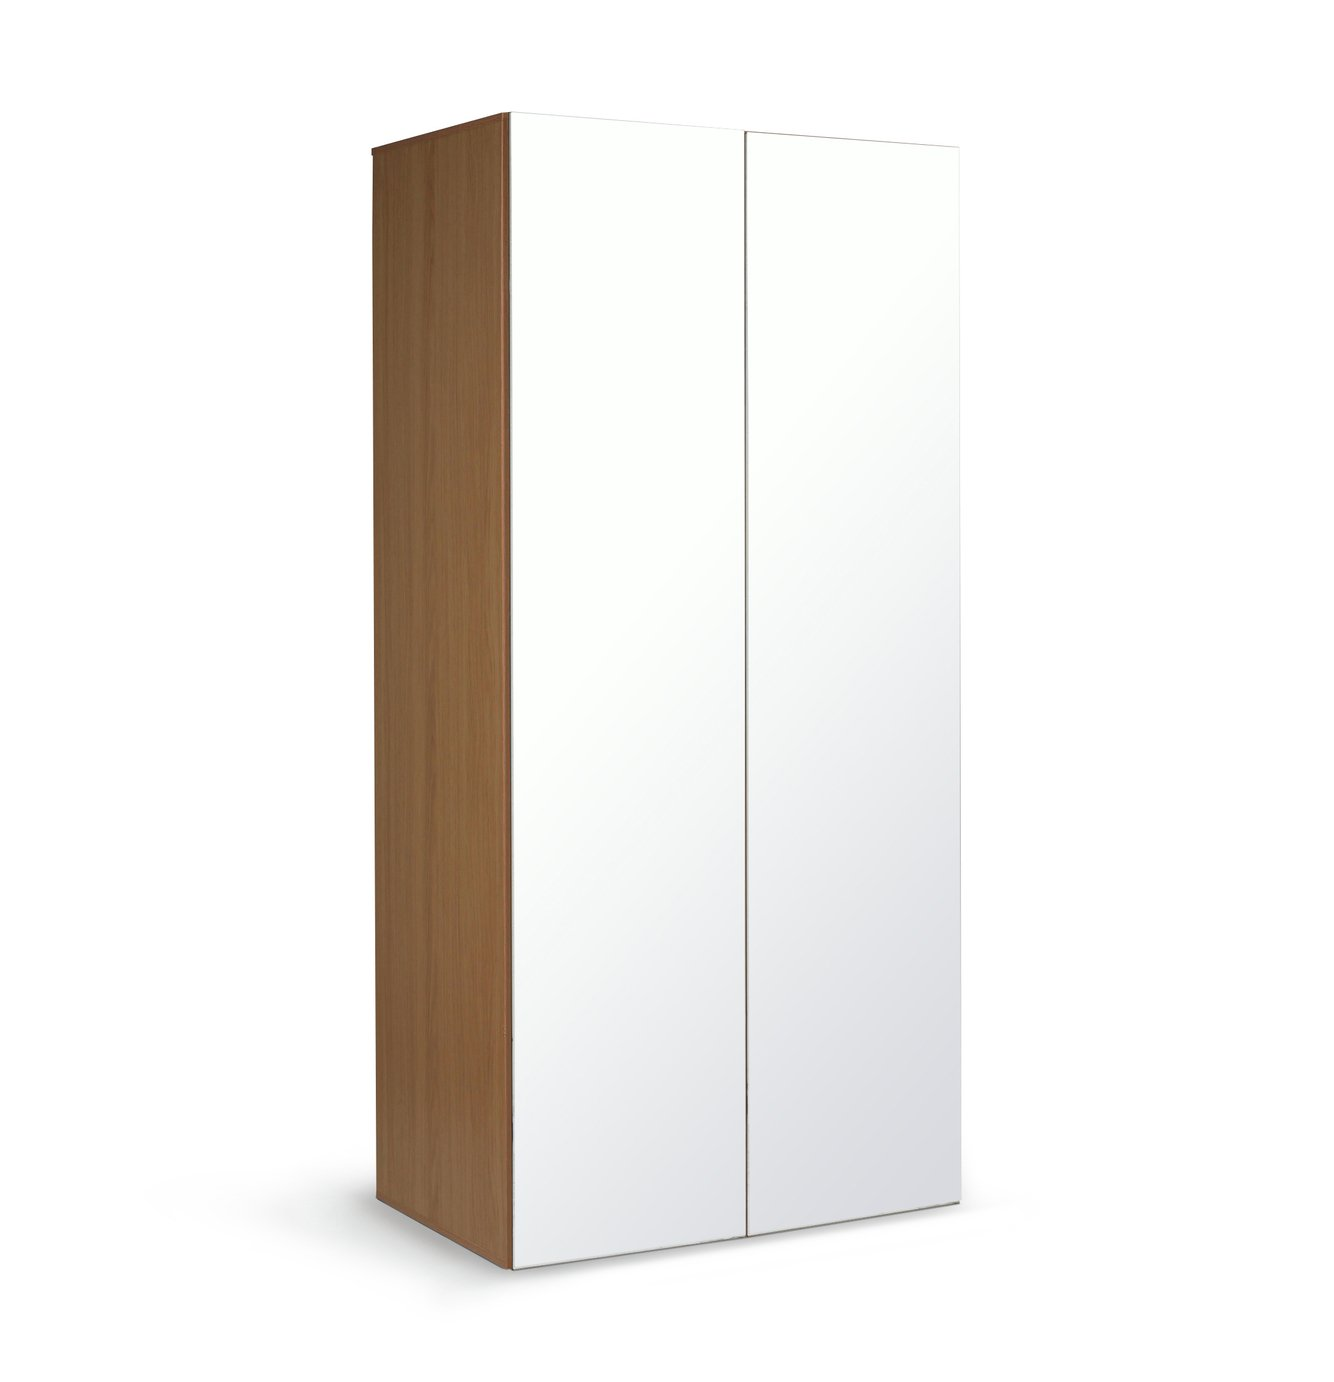 Argos Home Atlas 2 Door Mirrored Tall Wardrobe